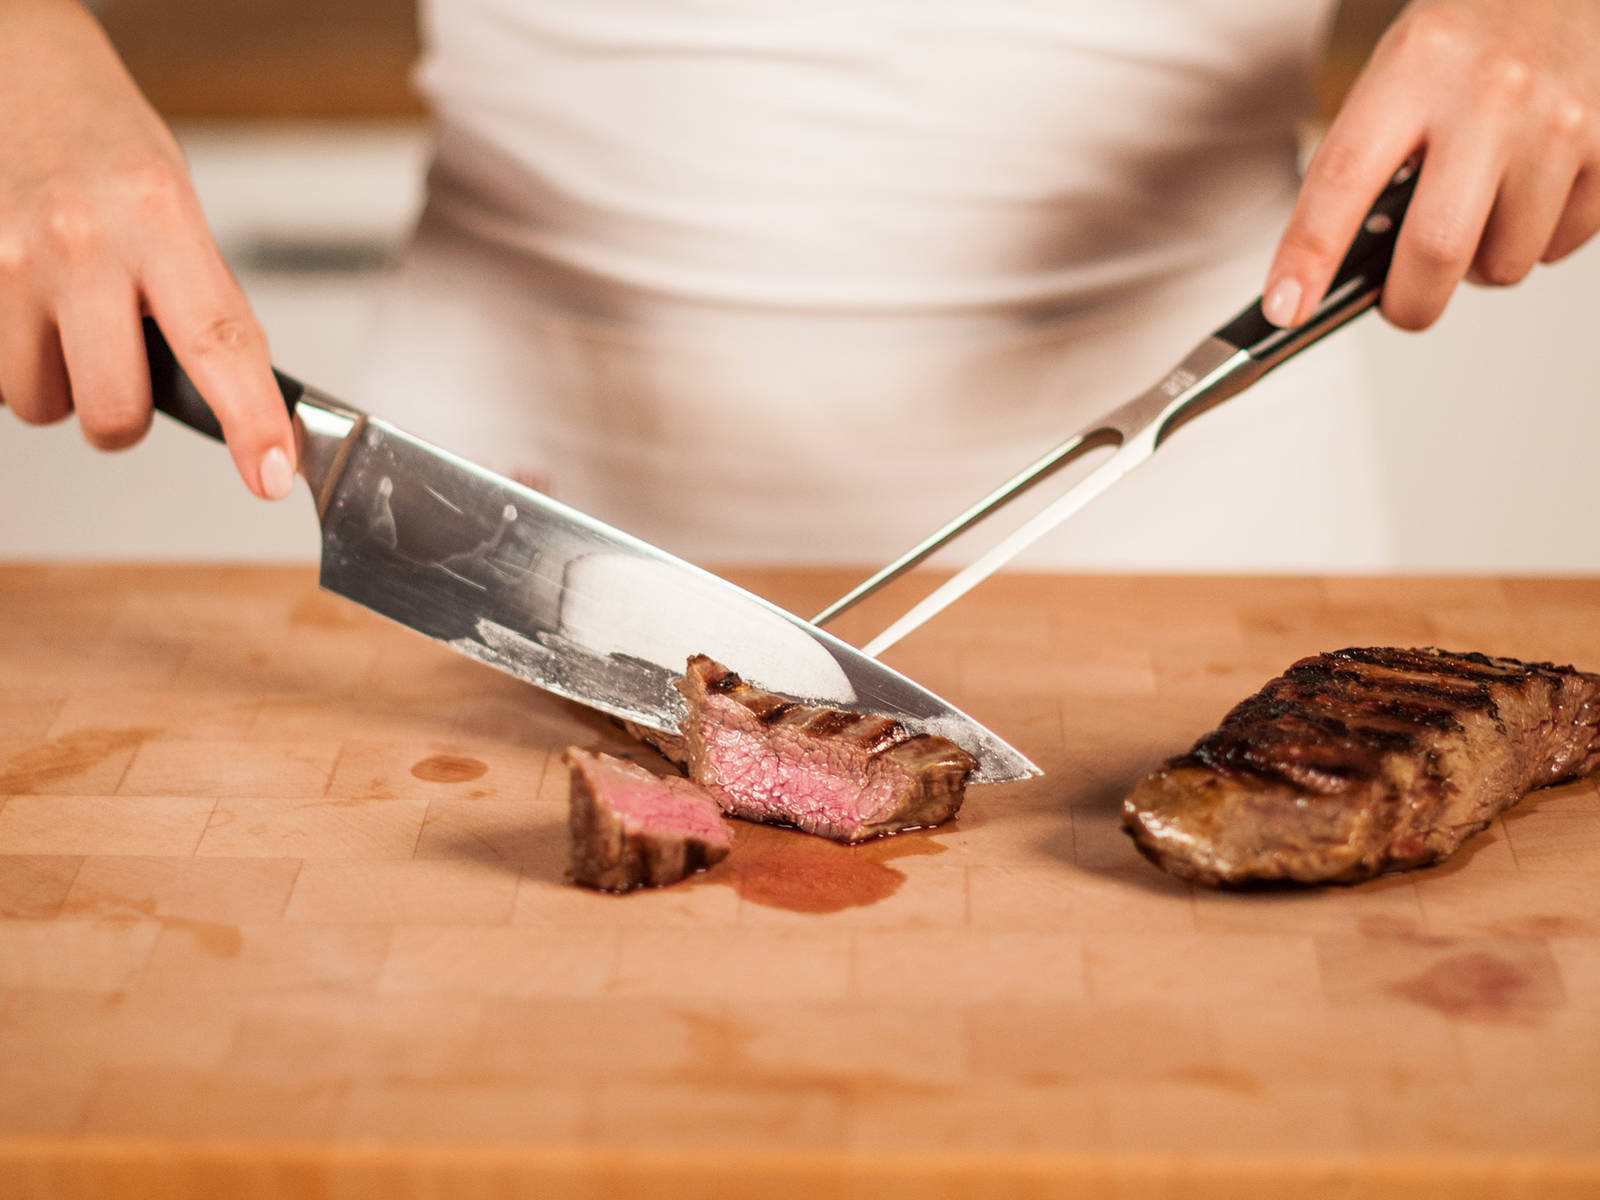 Serve by slicing the steaks into thin slices, always cutting the steaks against the grain of the meat for maximum tenderness.